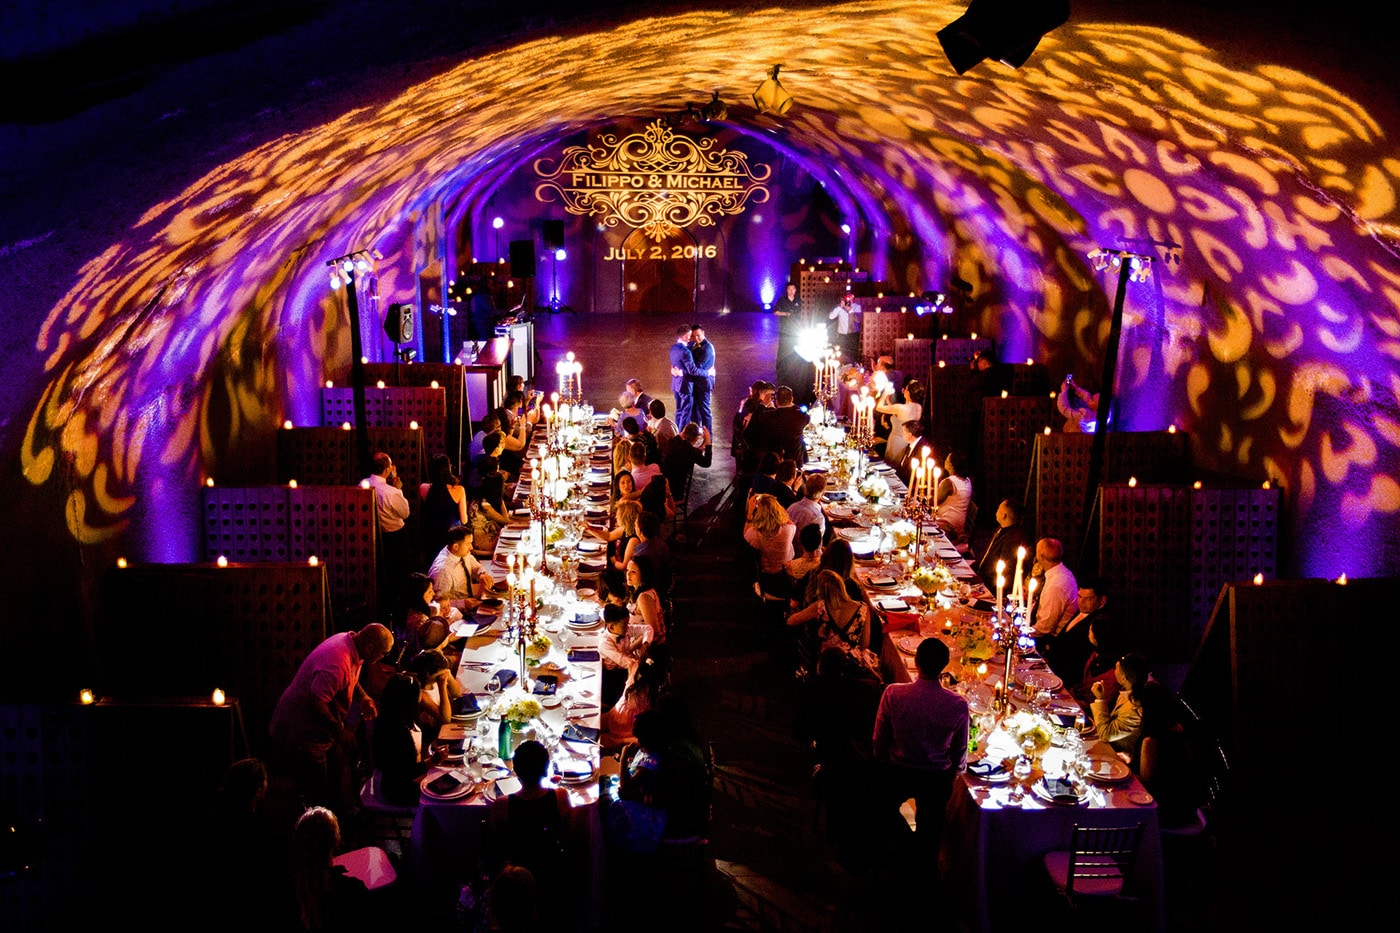 Wedding Reception in a Cave